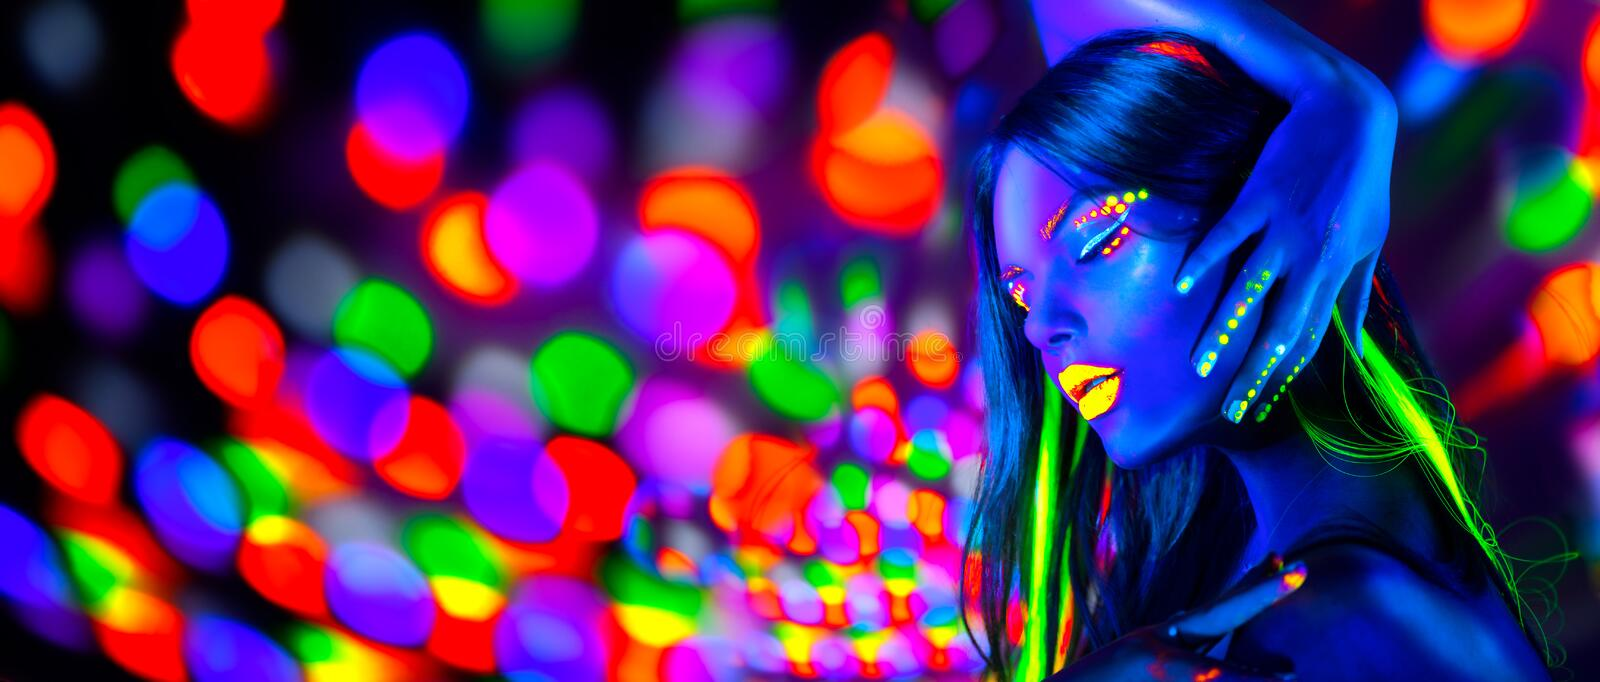 Sexy girl dancing in neon lights. Fashion model woman with fluorescent makeup posing in UV stock image